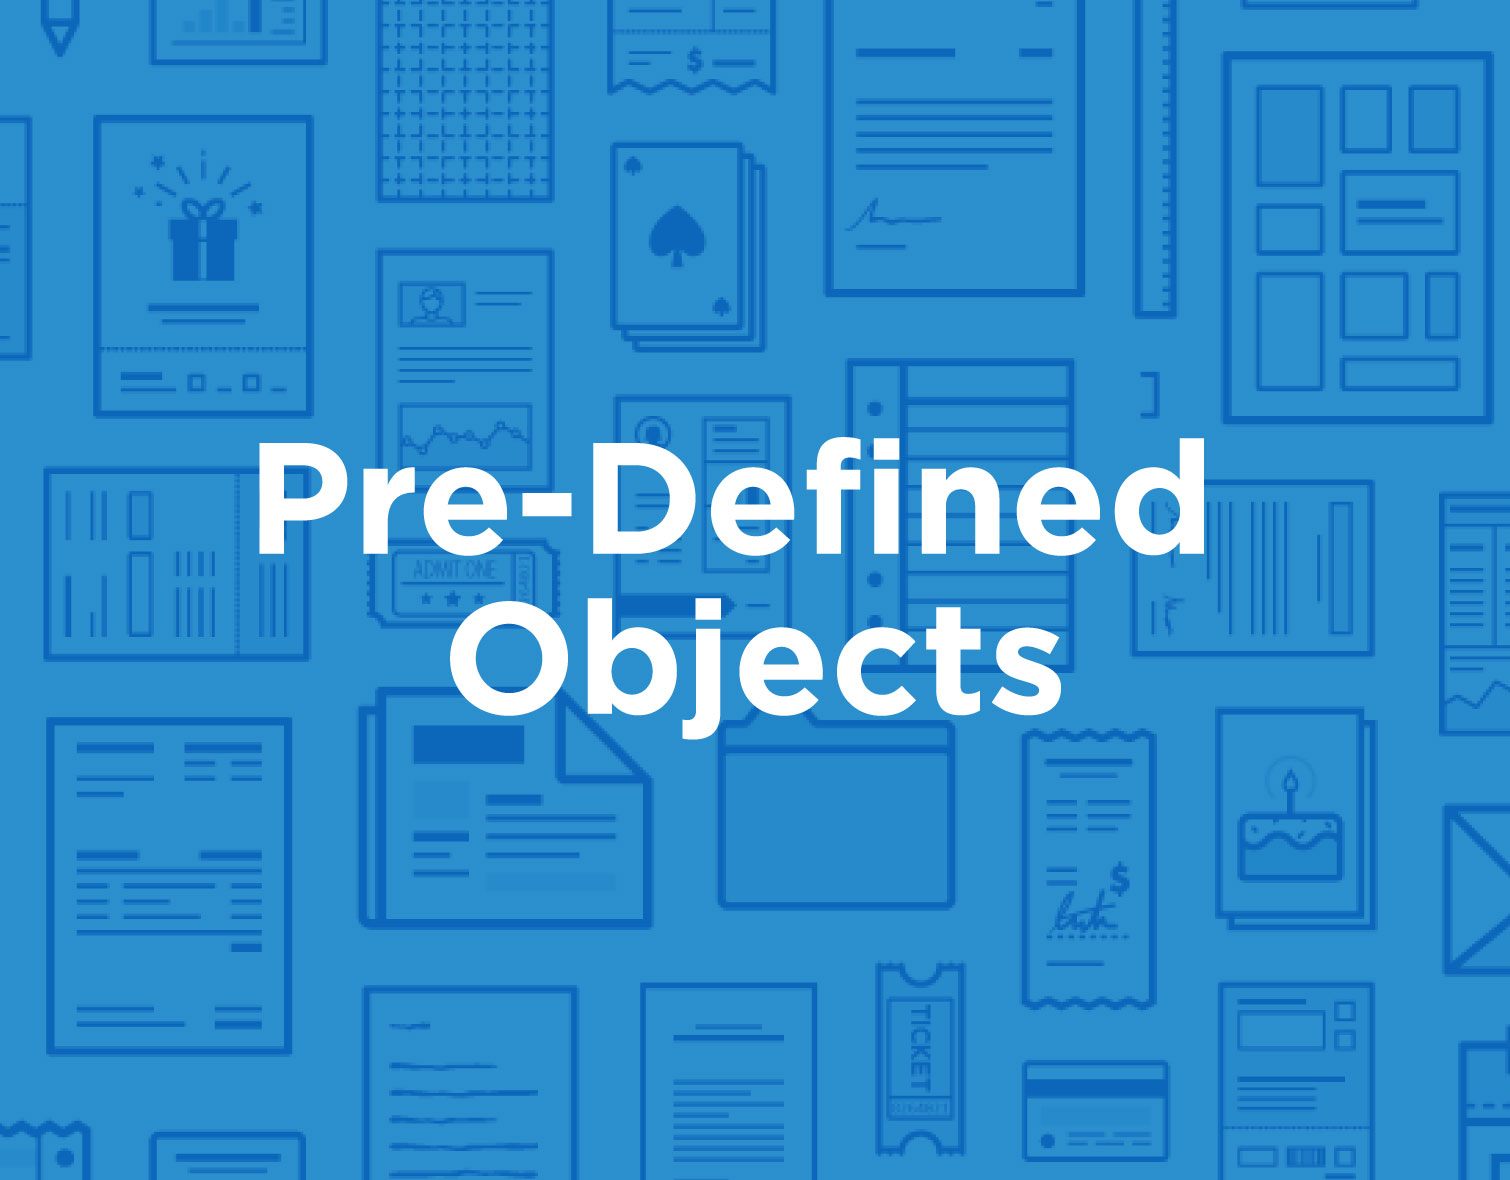 icon_pre-defined-objects.jpg